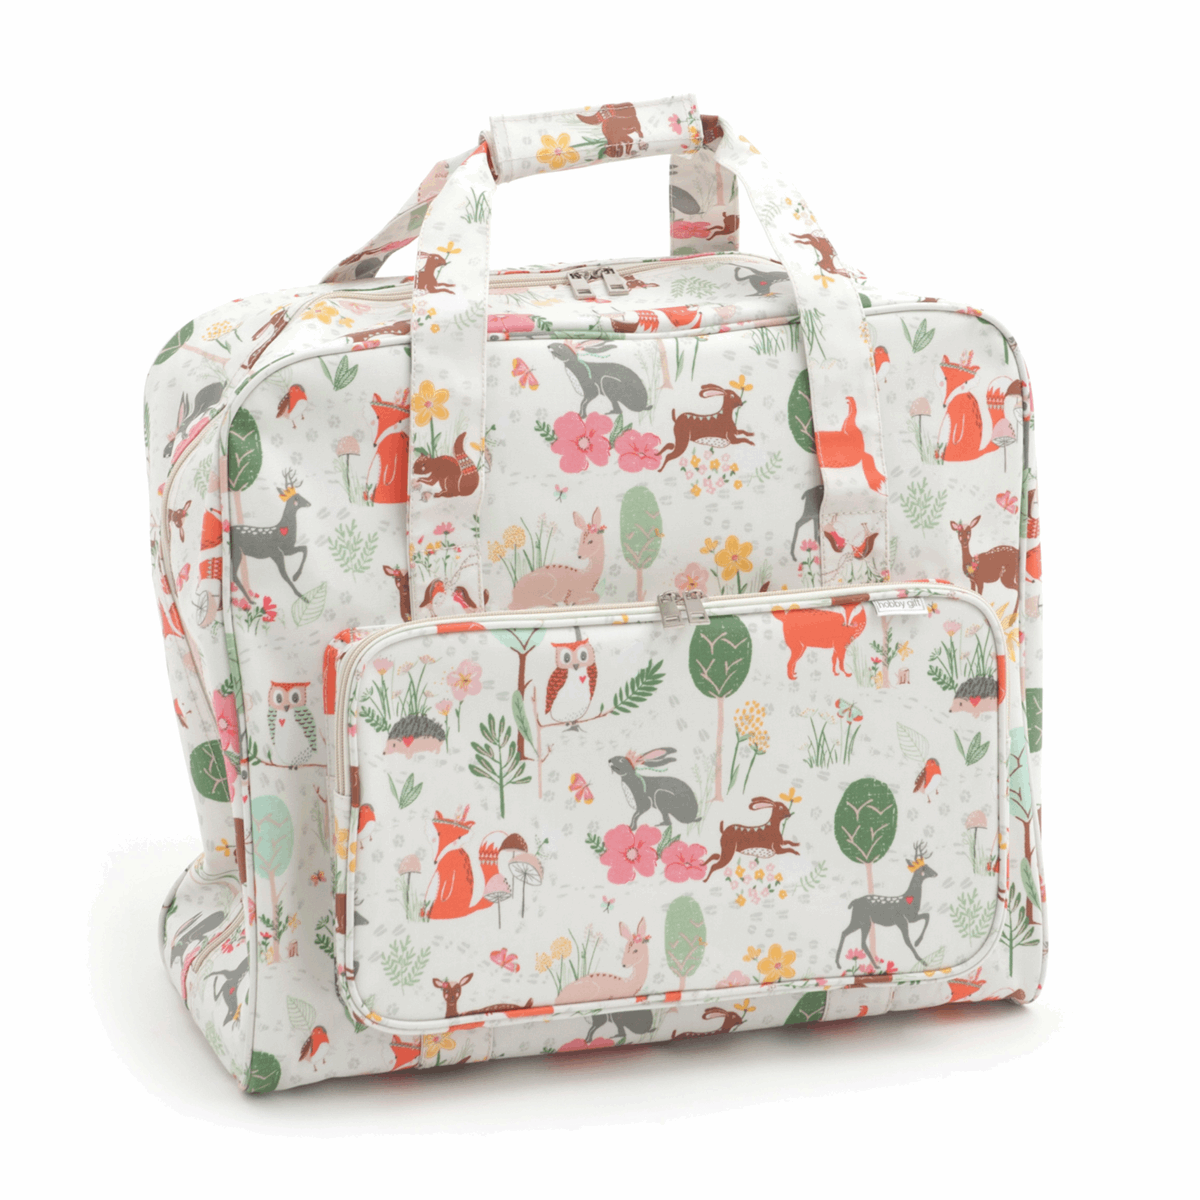 Woodland Sewing Machine Bag (Matt PVC)